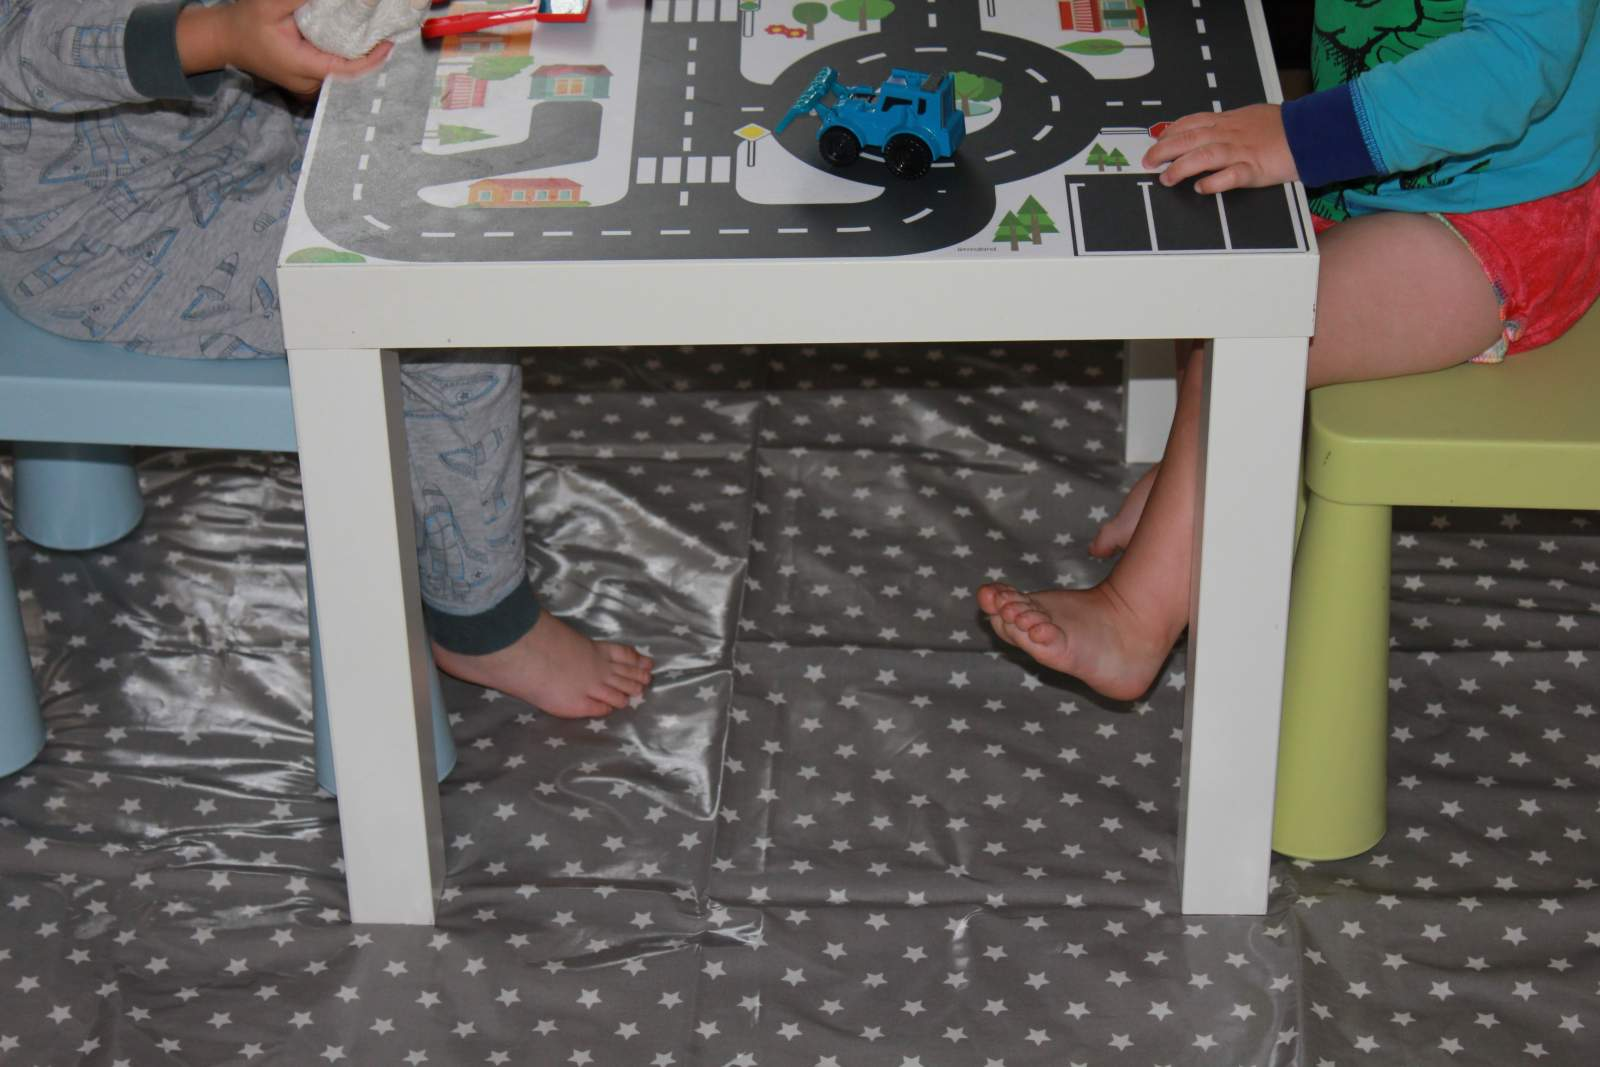 ikea lack table makes an ideal table for little children, especially when there's no room in the home for a permanent family table